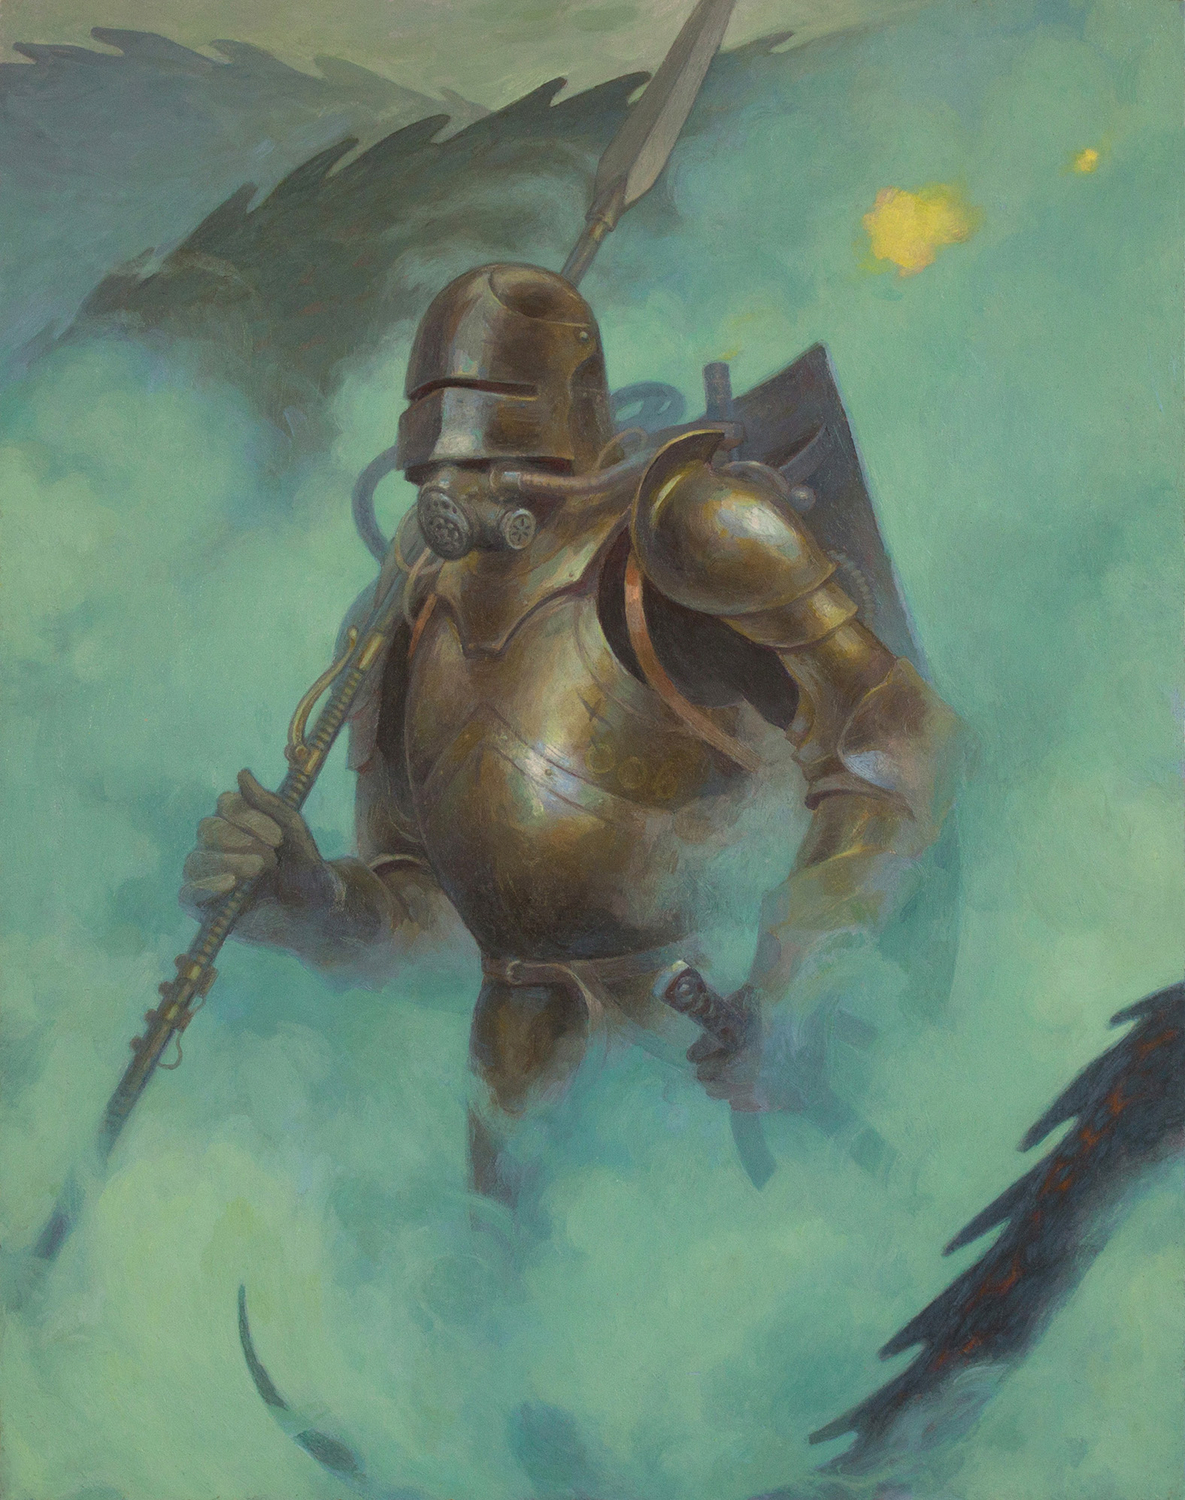 The 6th Knight Artwork by jessica shirley